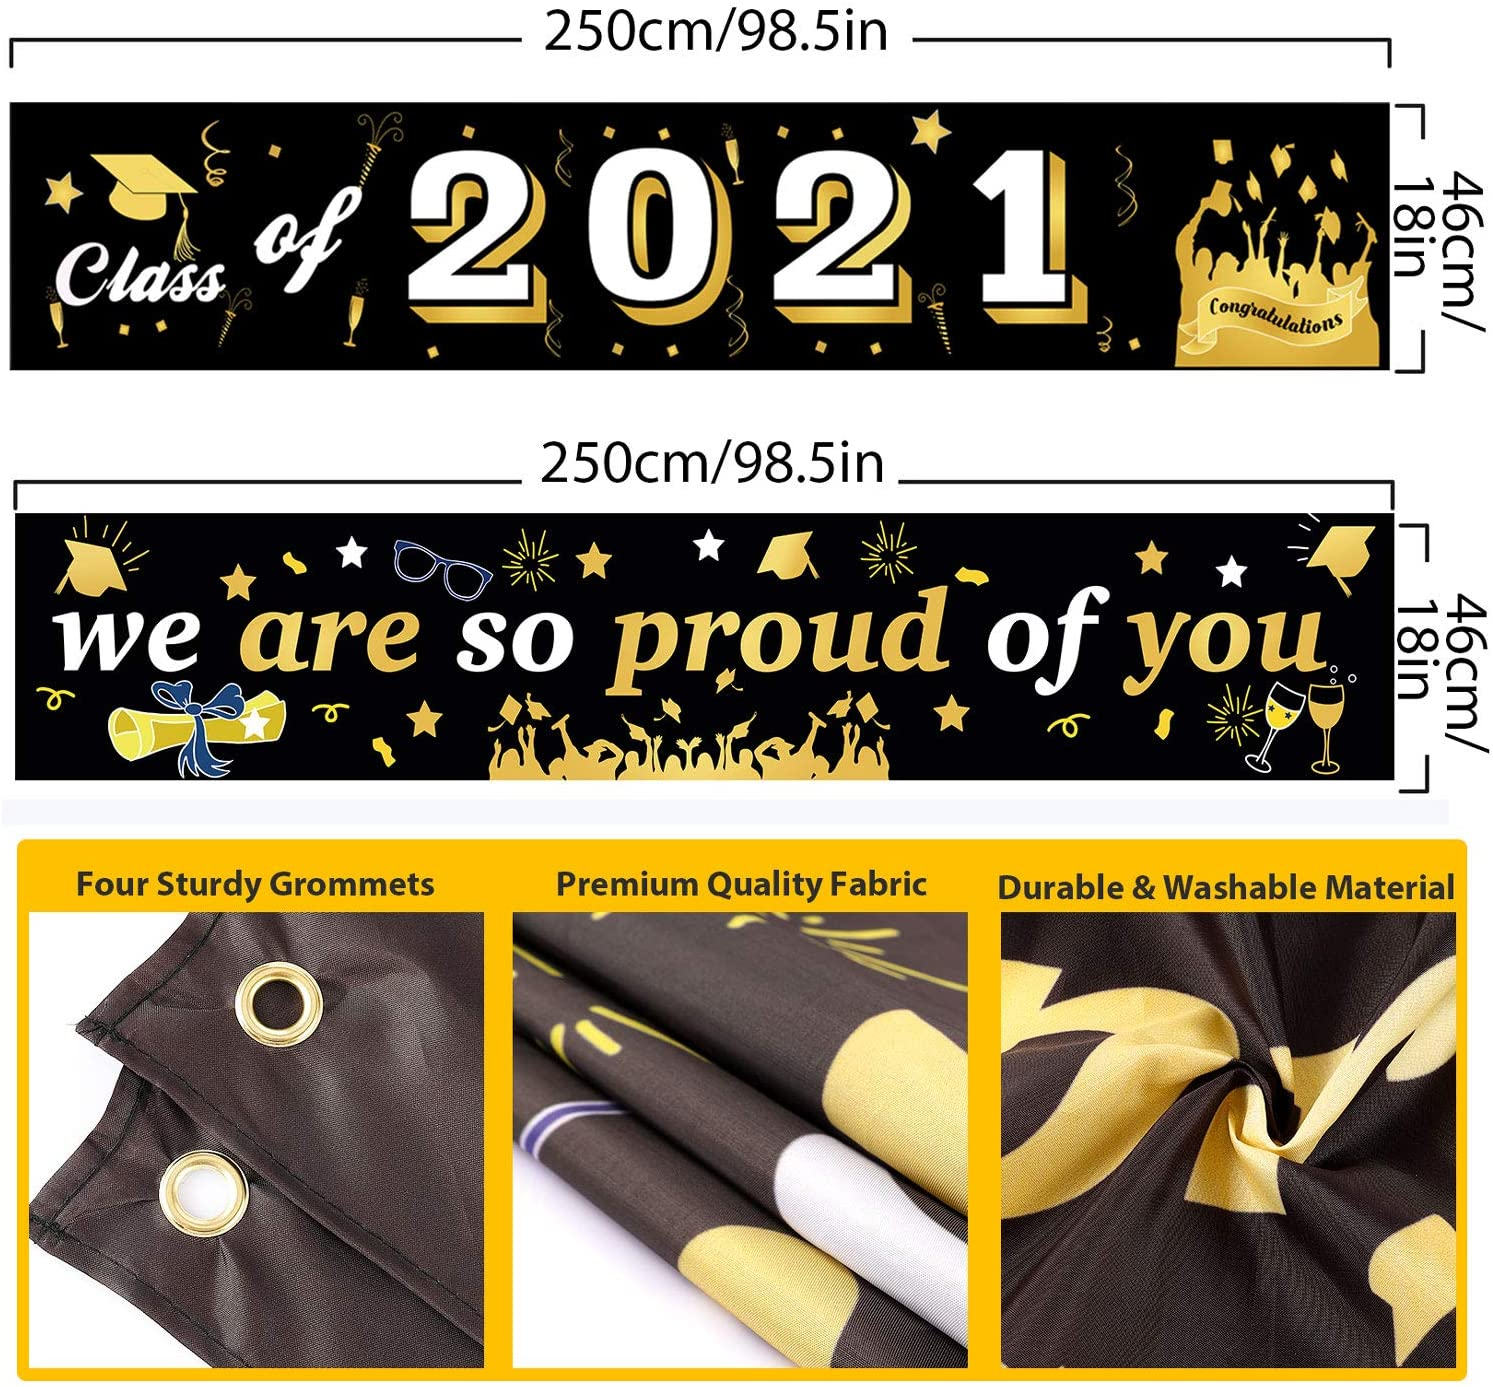 2021 Graduation Banners Party Backdrop For Indoor & Outdoor